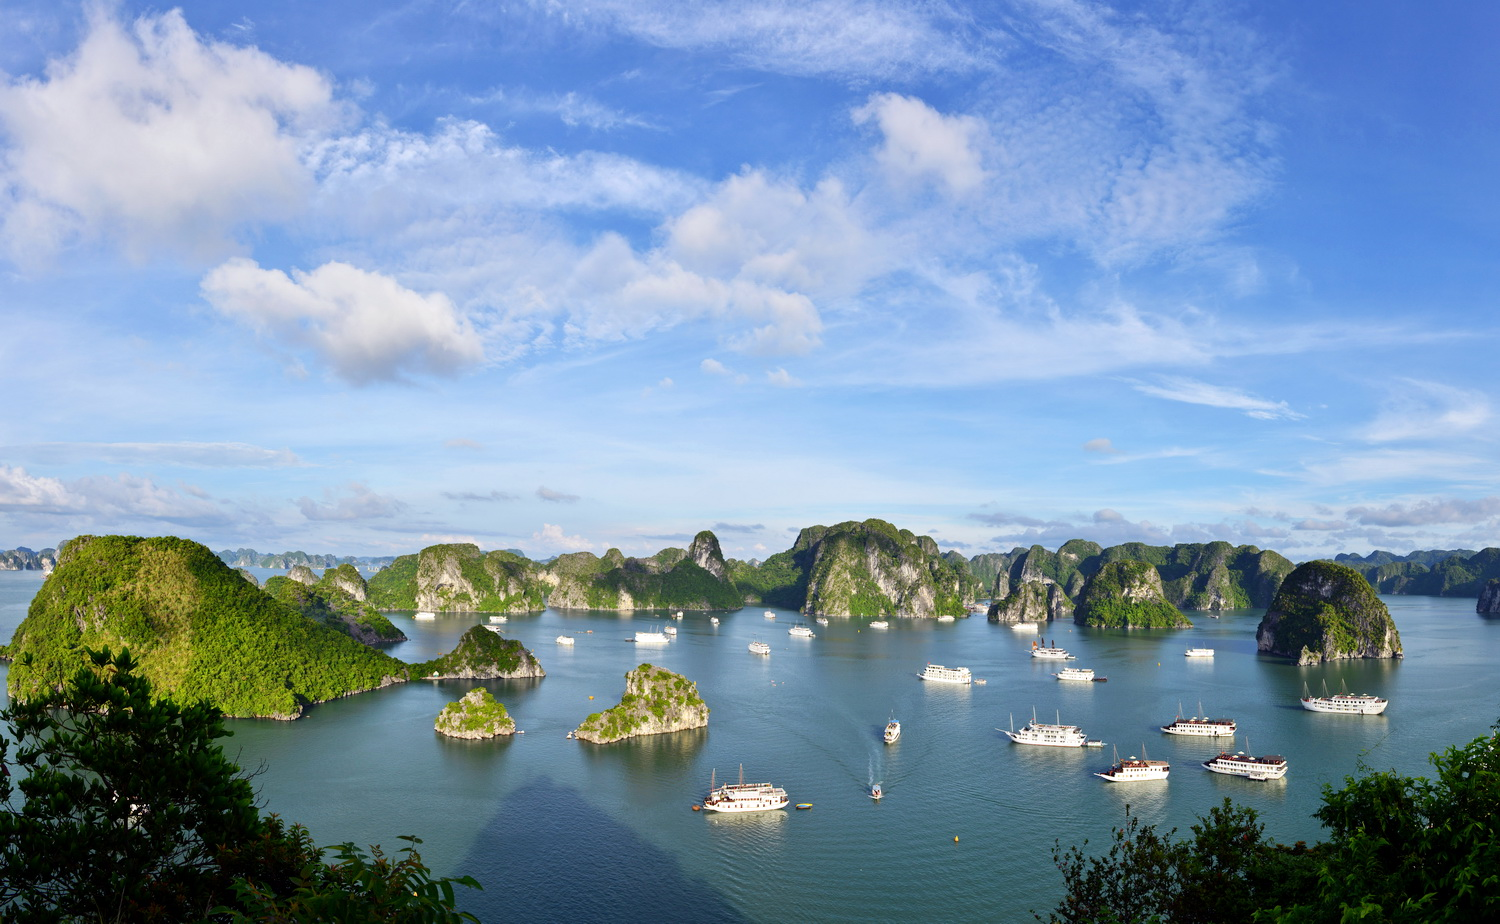 Viet Nam Classic Tour: Ha Noi - Ha Long - Sapa - Hoa Lu - Tam Coc - Hue 8 Days - 7 Nights